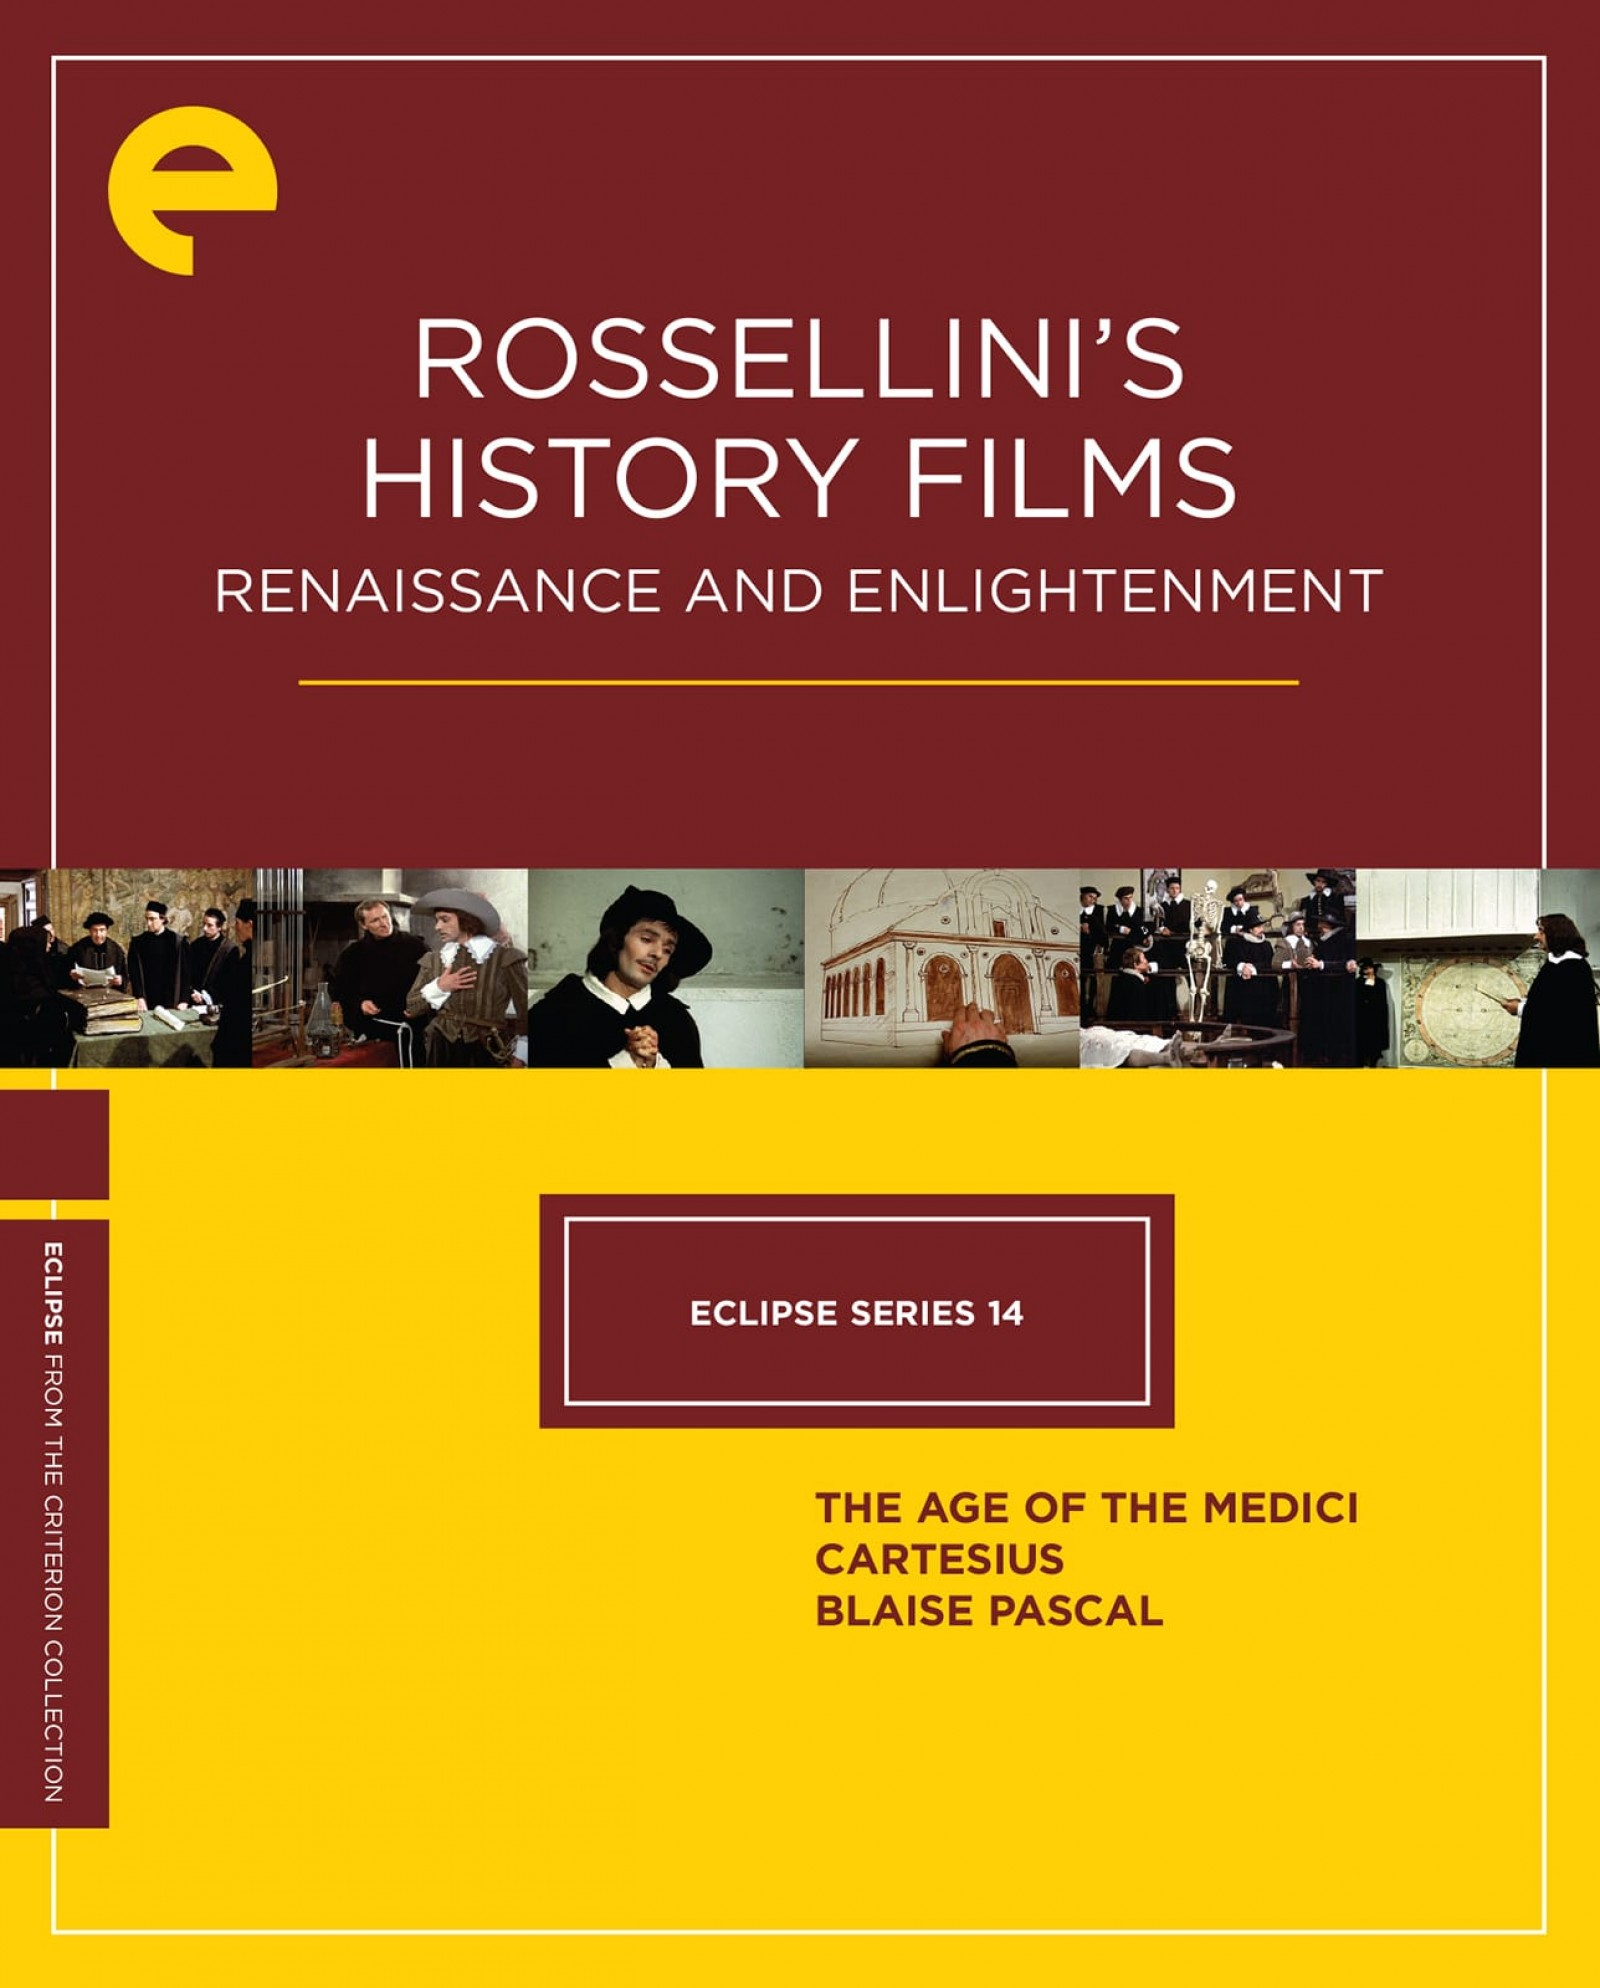 Eclipse Series 14: Rossellini's History Films—Renaissance and Enlightenment